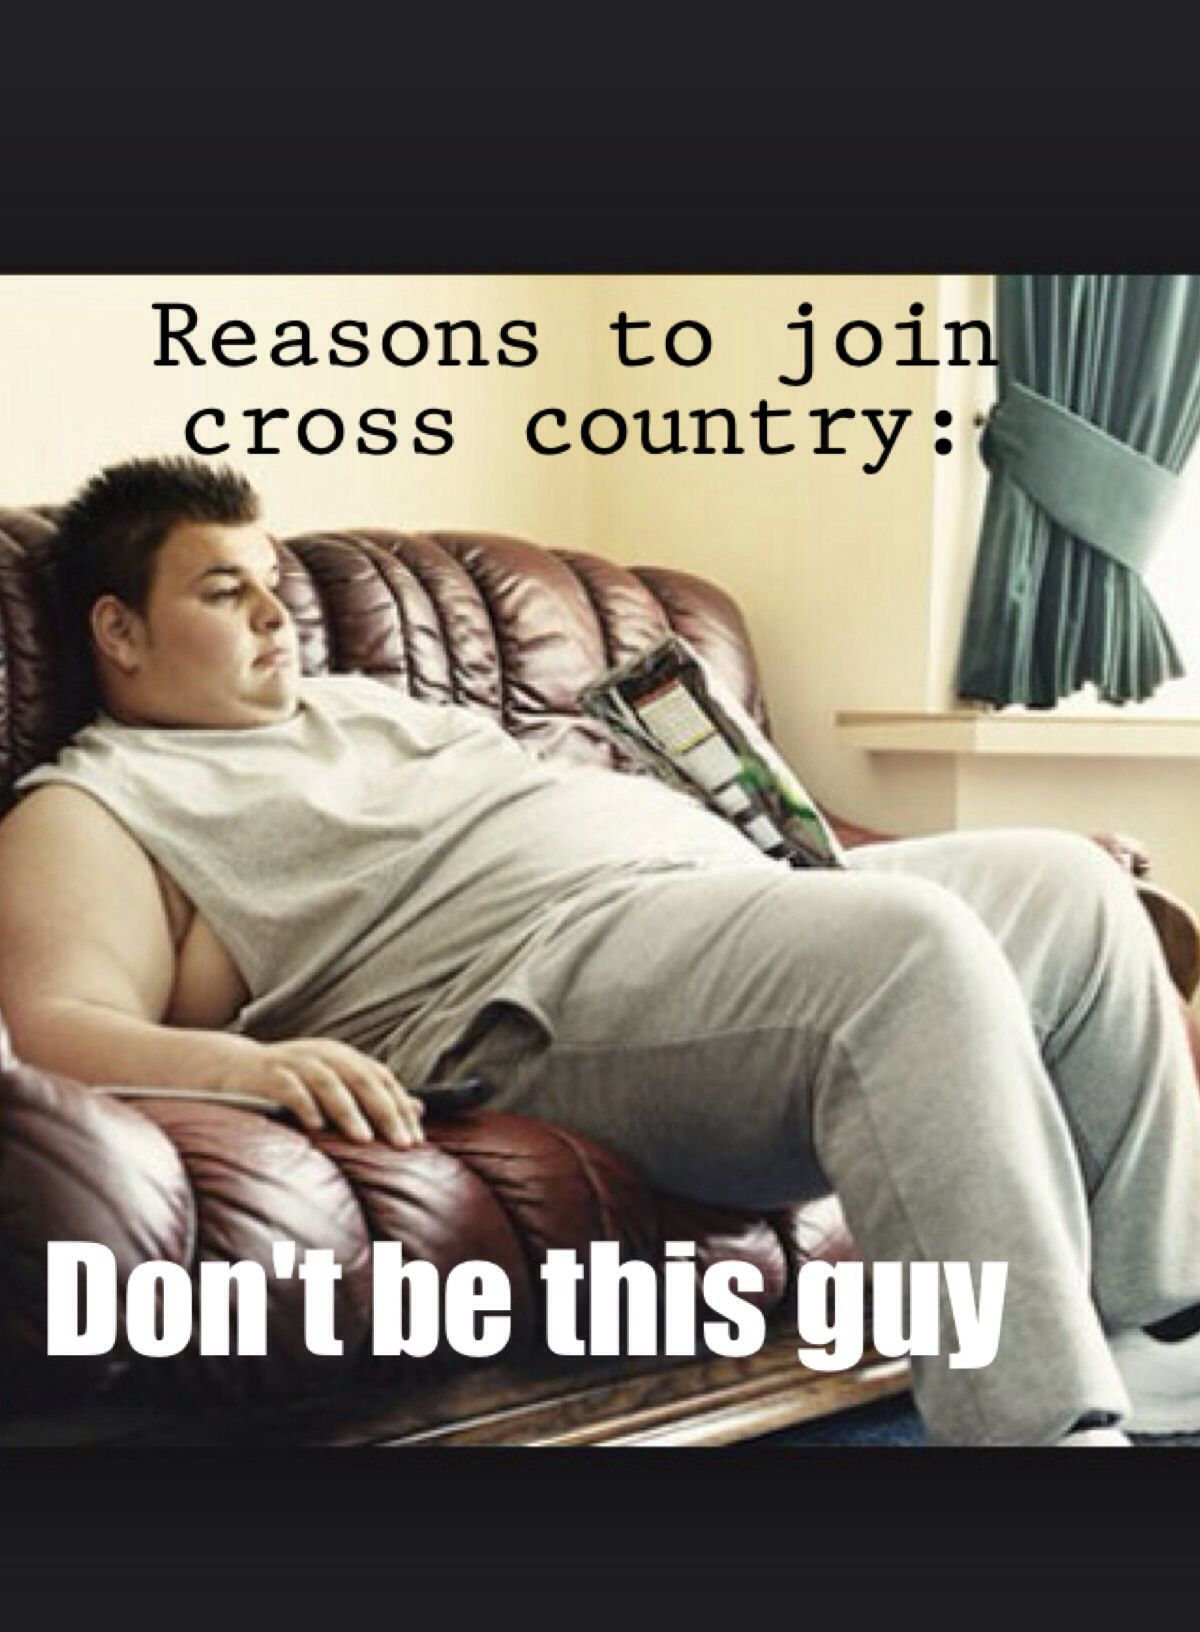 Funny running picture, cross country, so true lol